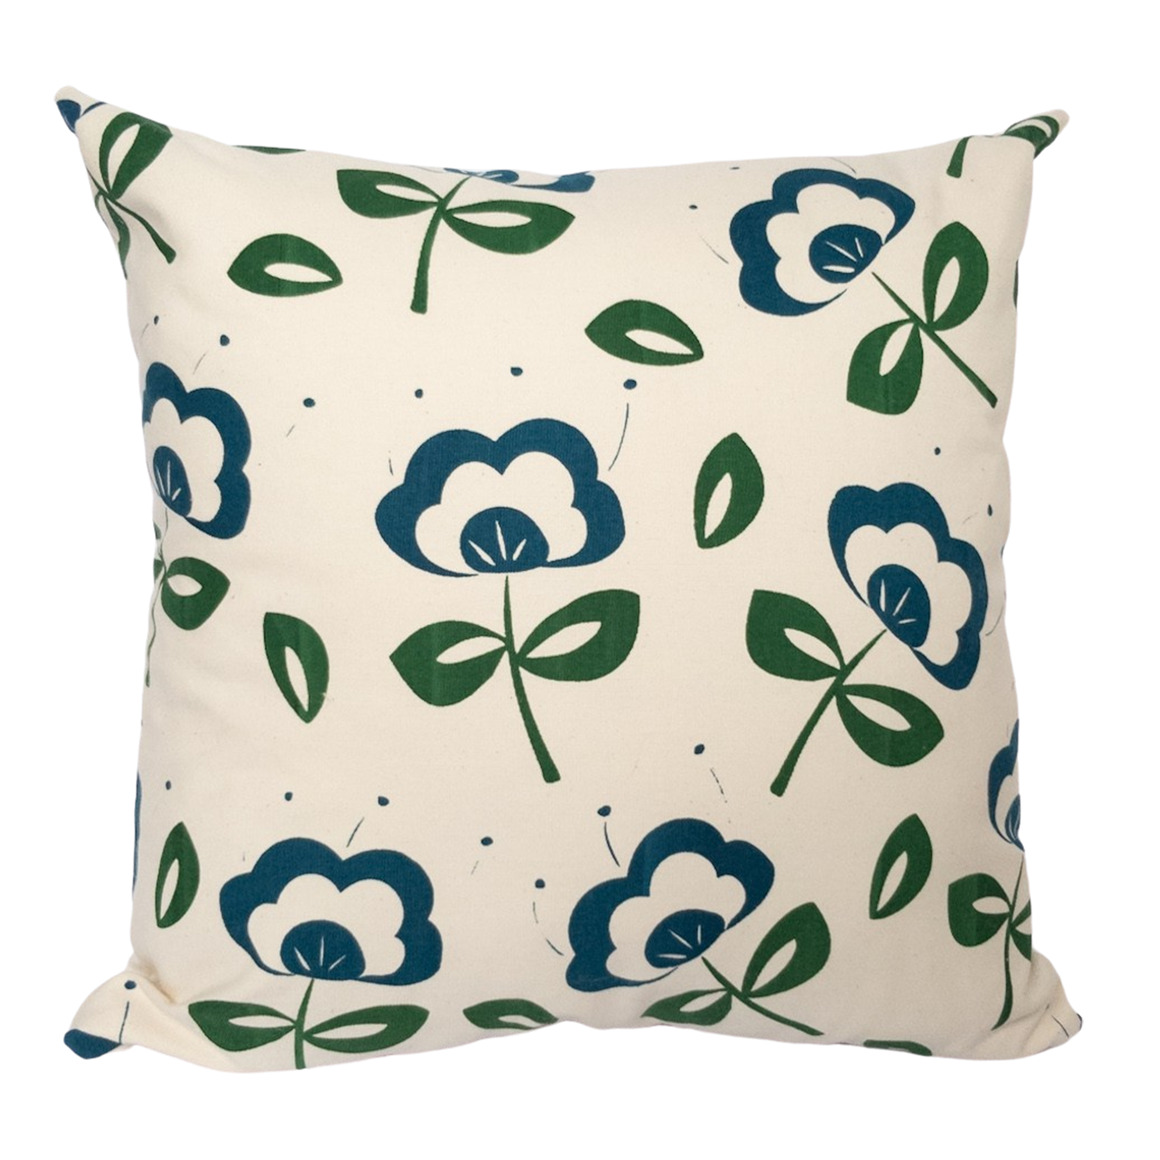 Retro Flower Hand Screen Printed 100% cotton cushion cover-3 Colourways-Cover  Only | Trada Marketplace